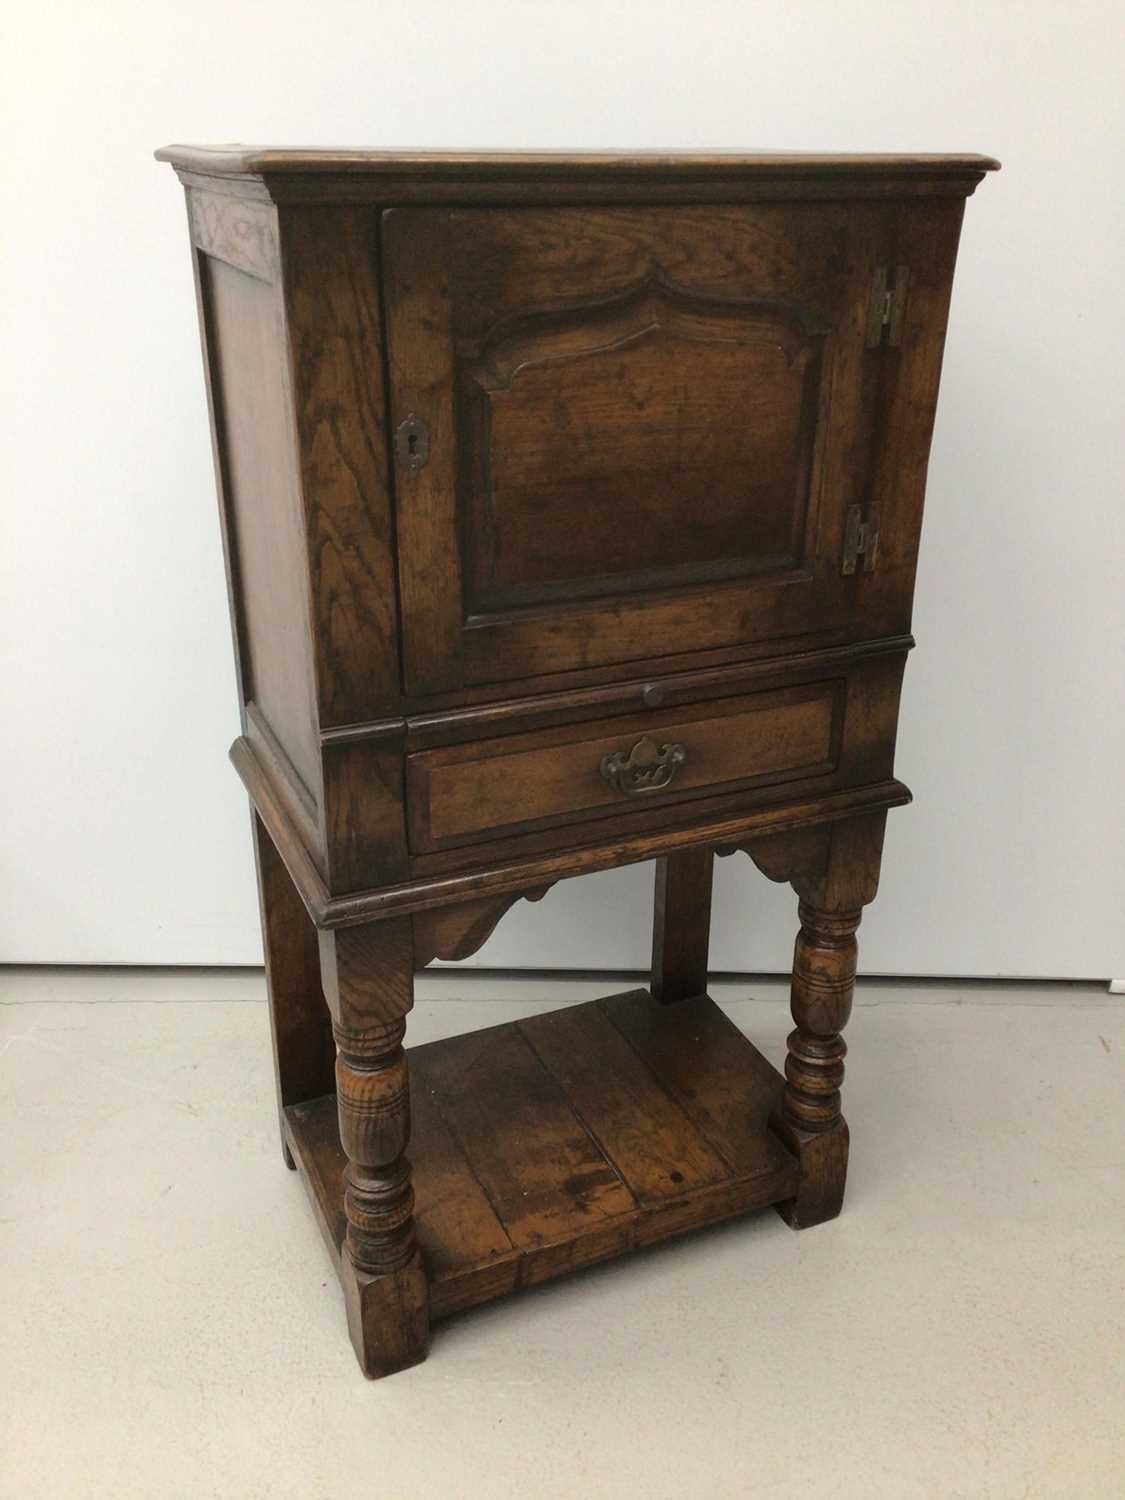 Lot 90 - Antique style oak cupboard with panelled door, draw below on turned front supports with under tier 62cm wide x 41cm deep x 114cm high